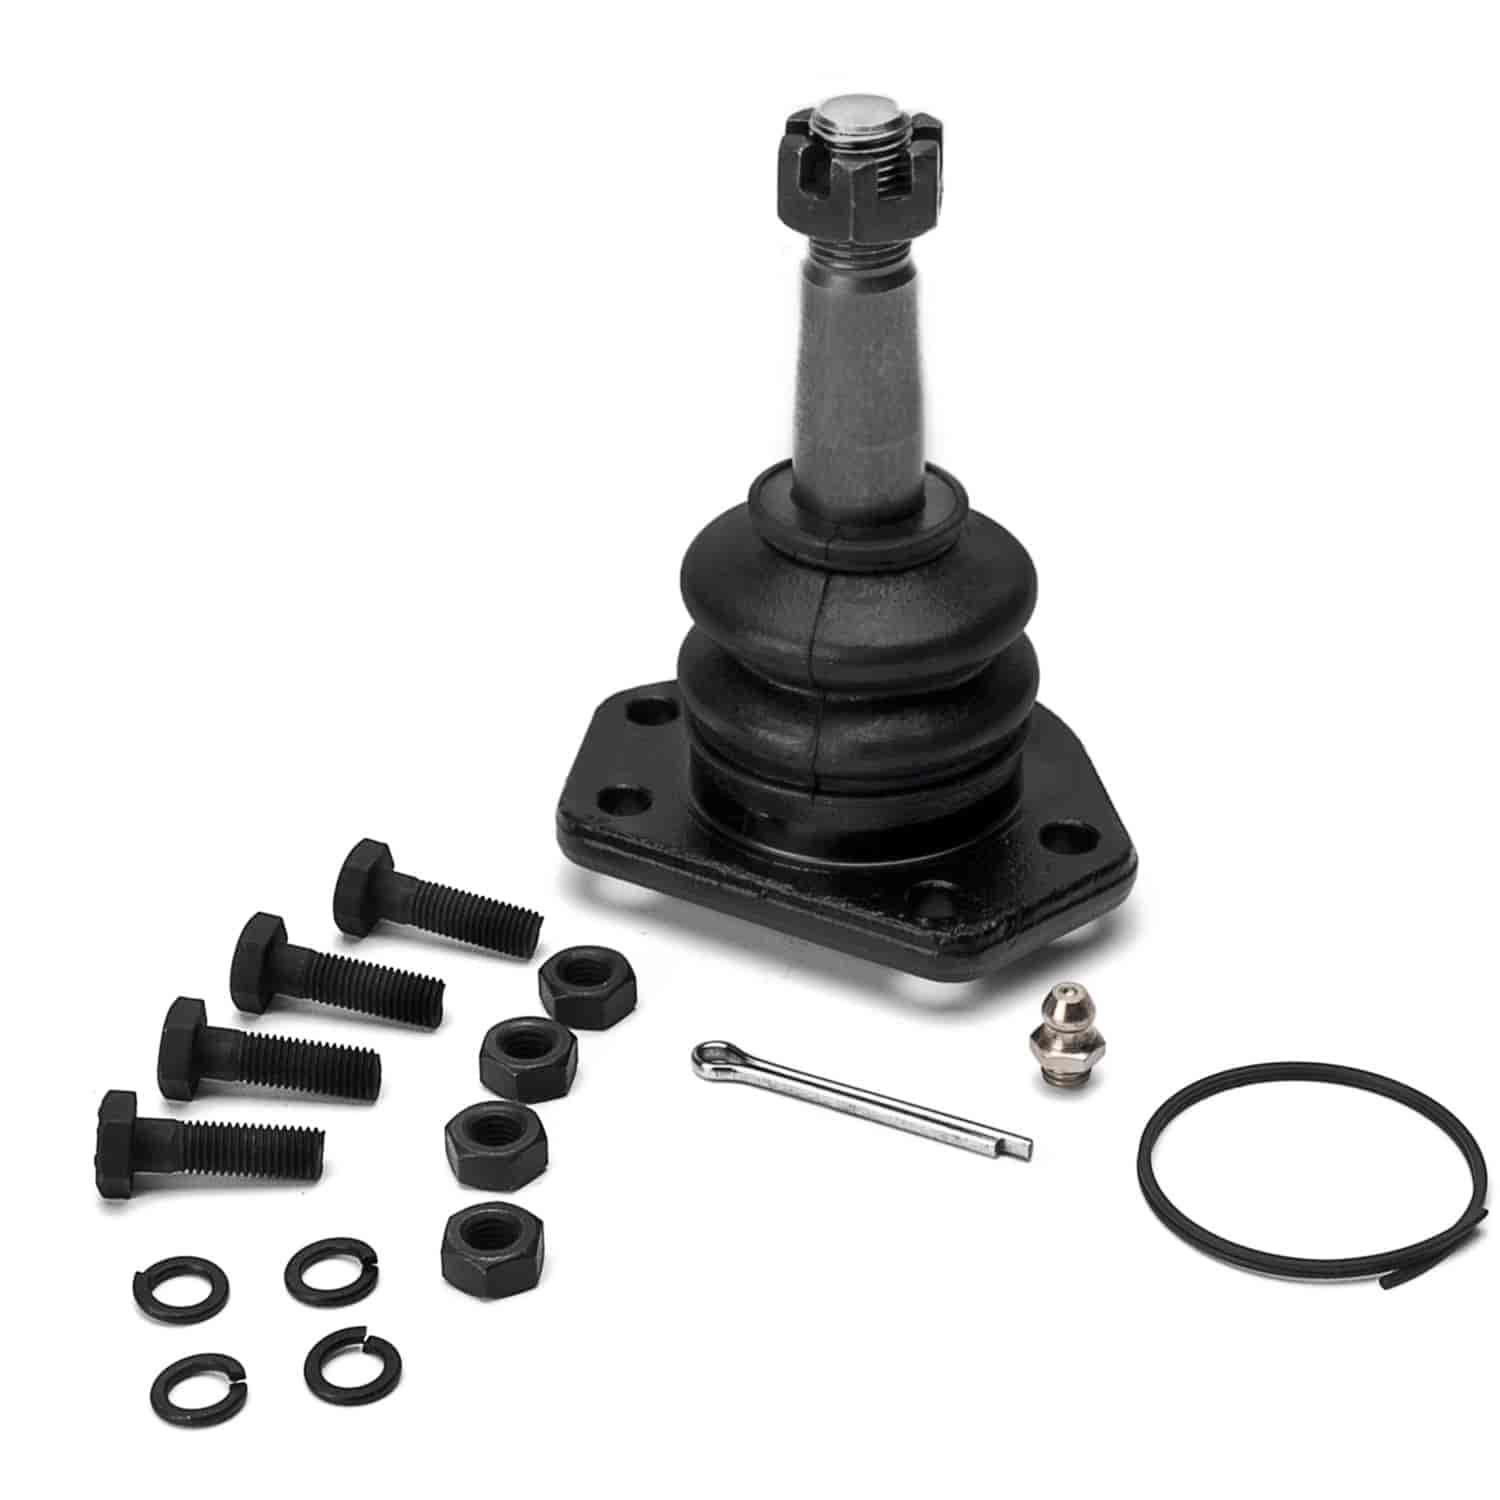 Proforged 101-10016 - Proforged Ball Joints